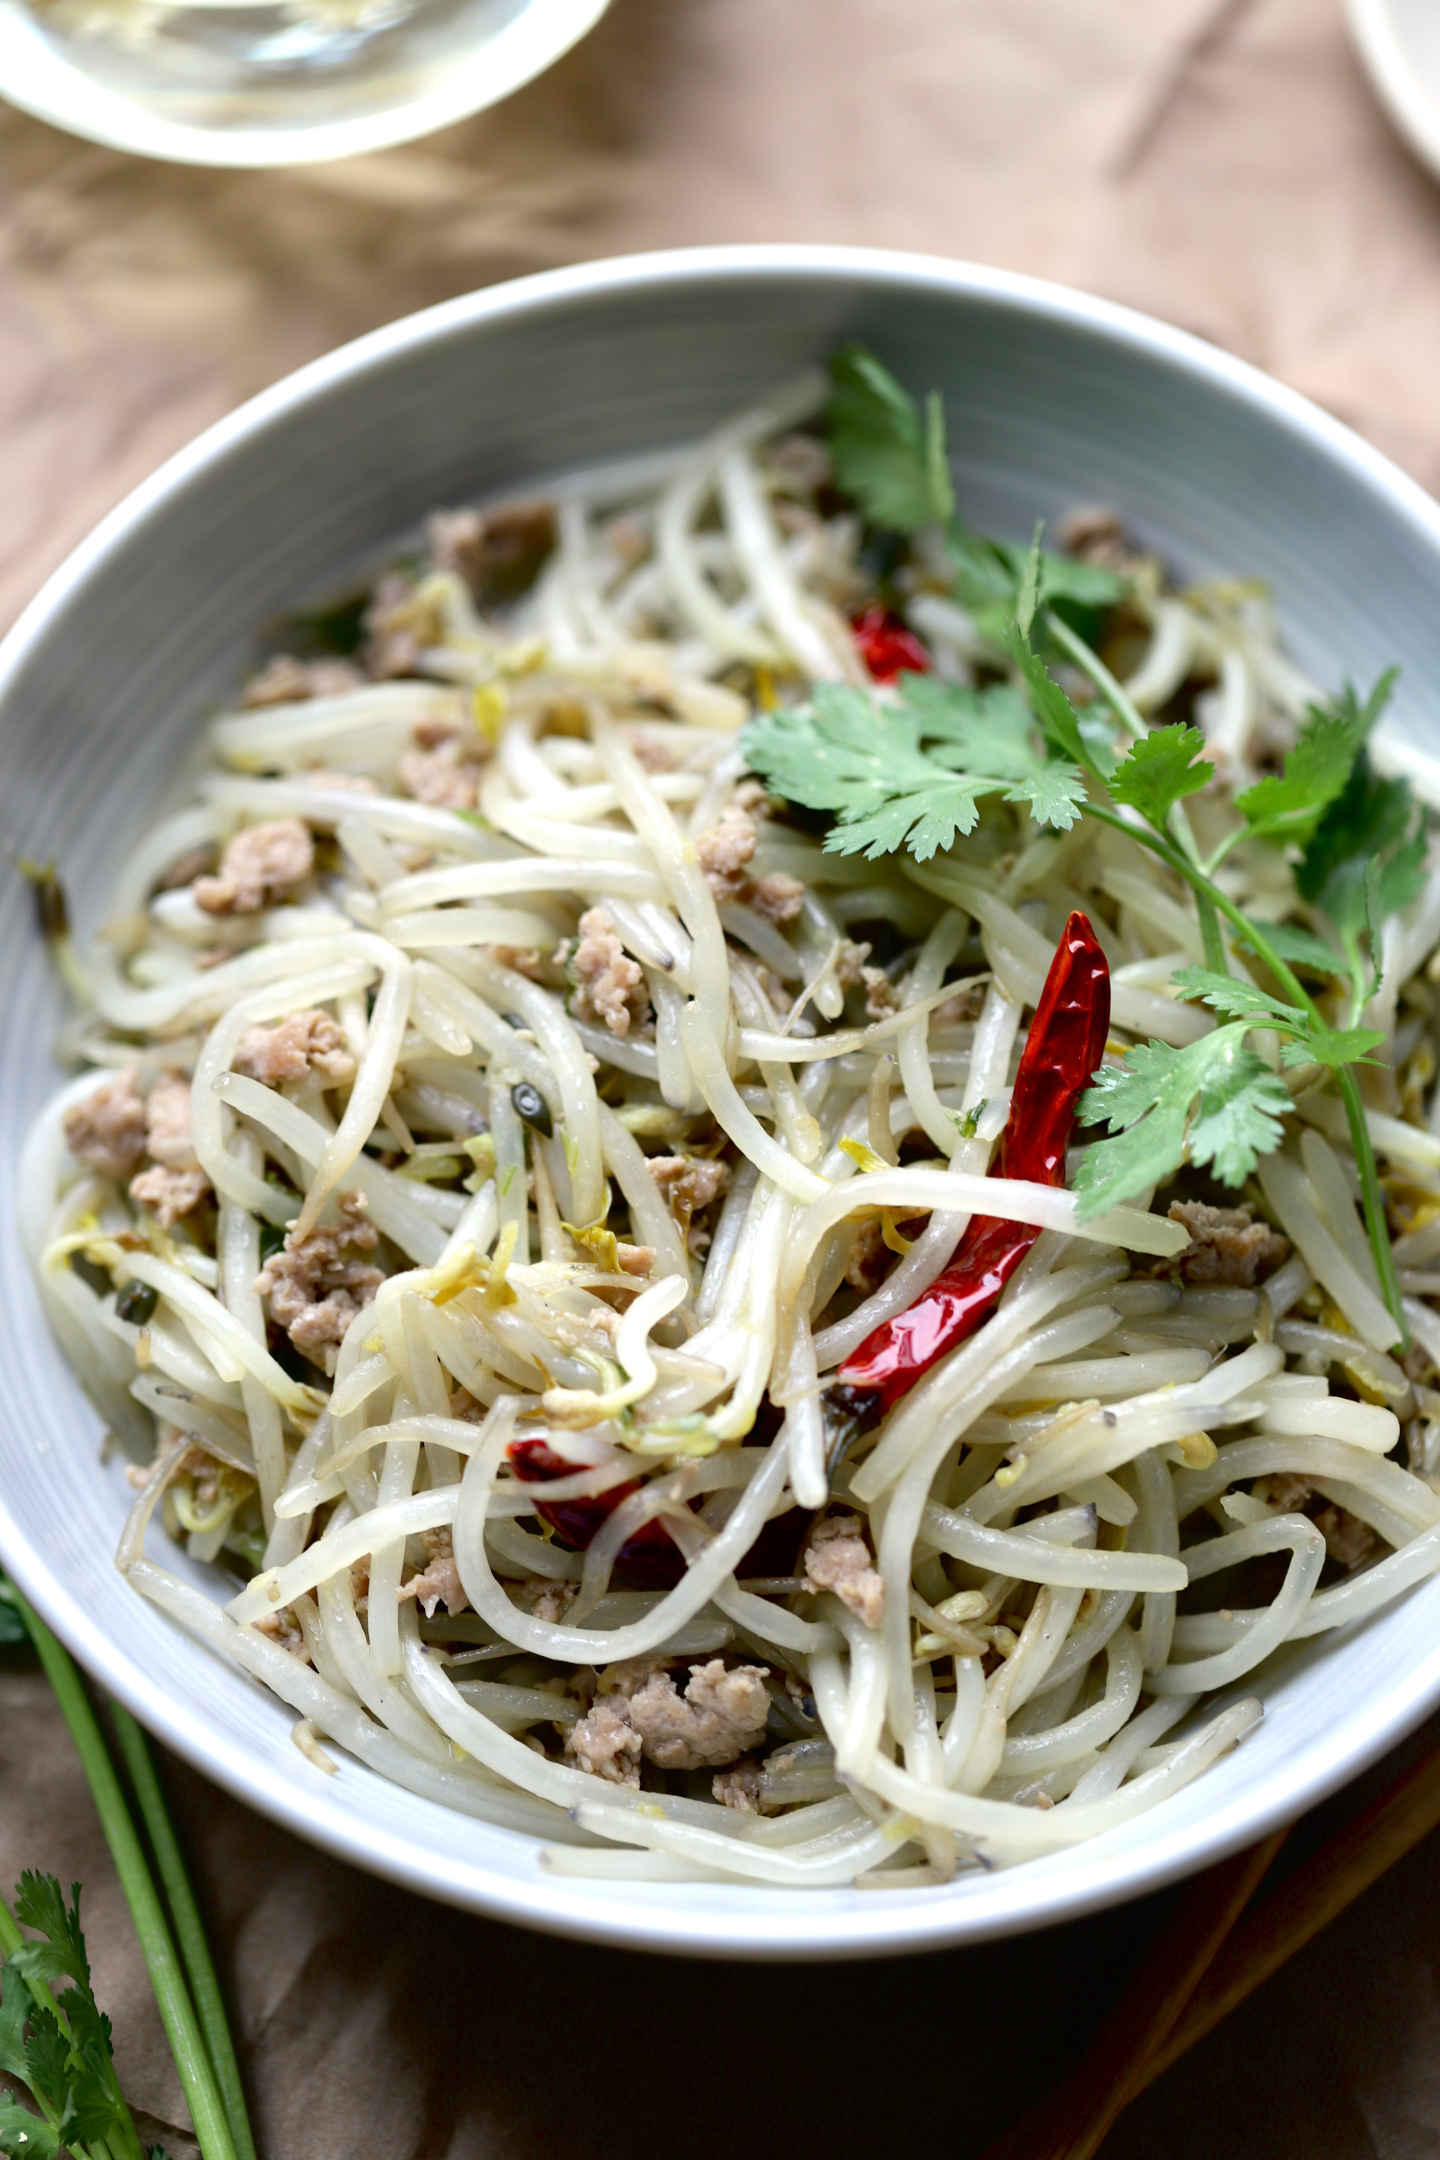 minced pork and beansprouts with a kick from the chili pepper